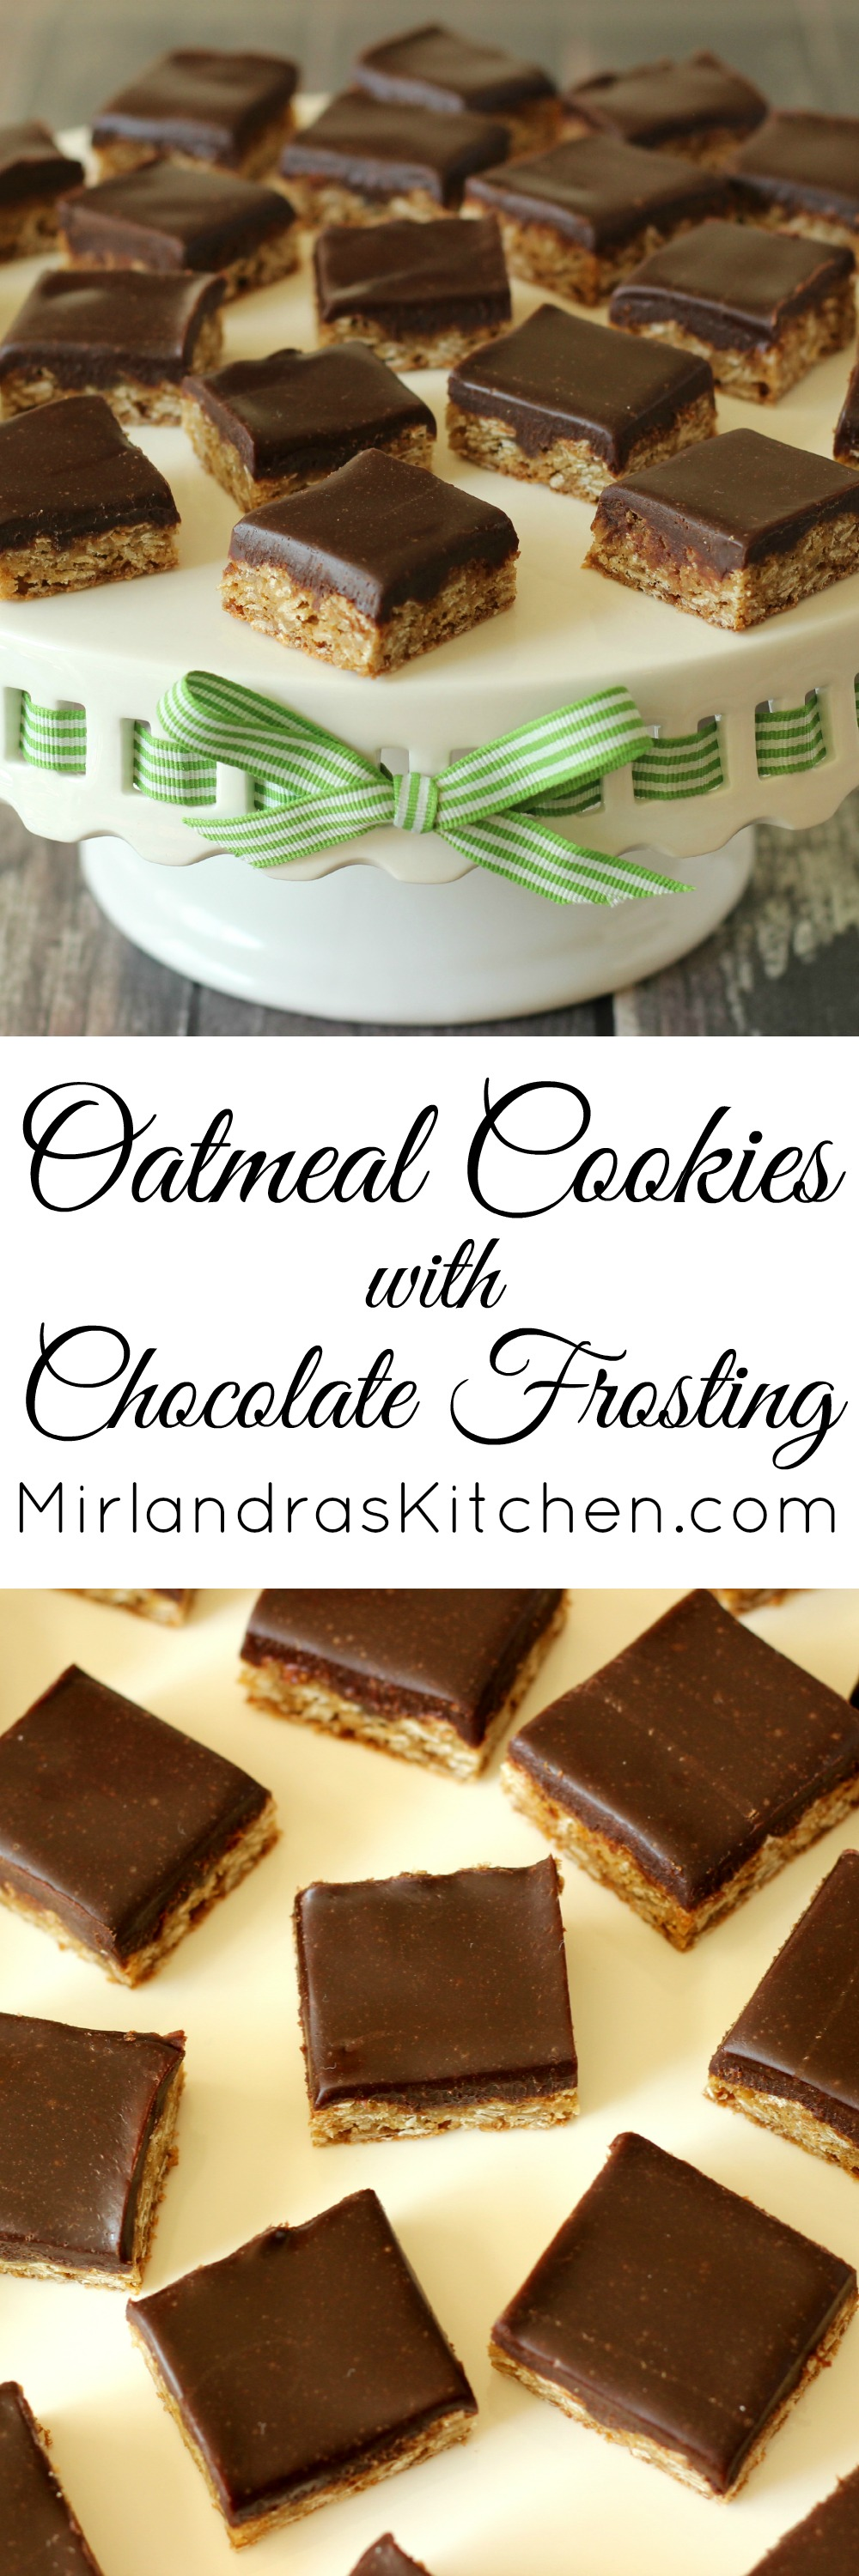 Oatmeal Cookies with Chocolate Frosting